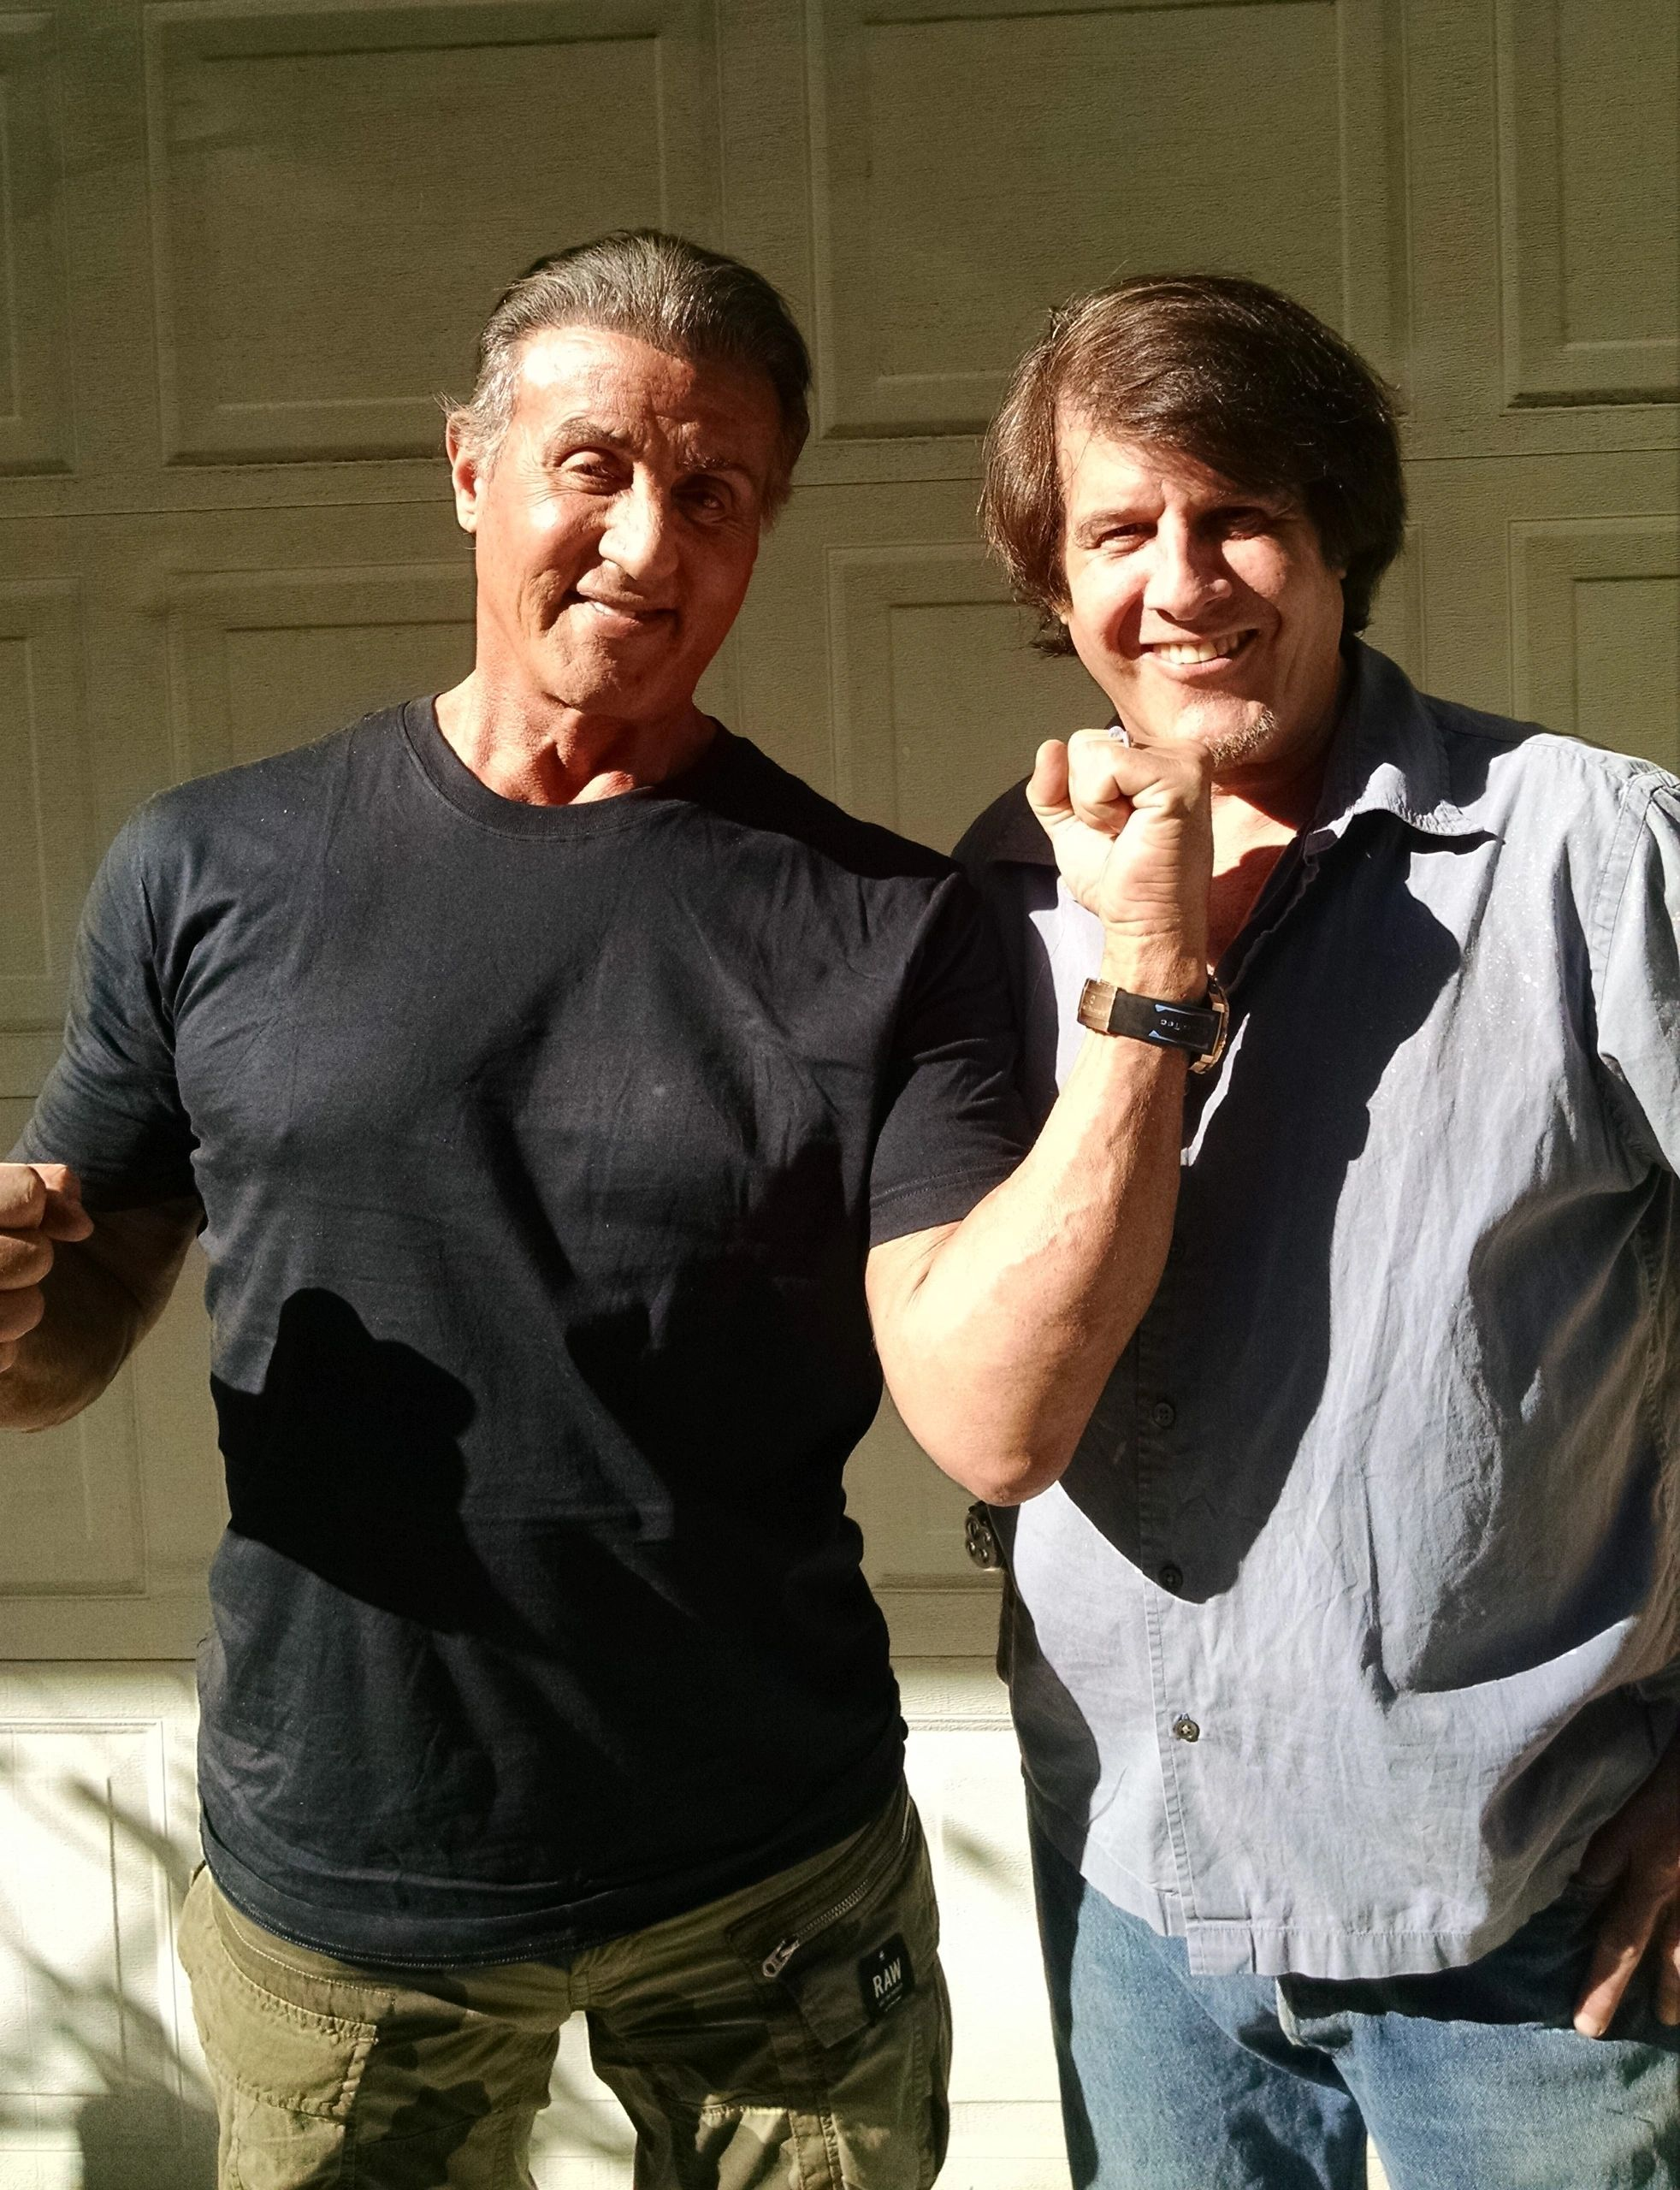 Sylvester Stallone visited me & my memorabilia before he went to DC to get the Pardon for Jack 2018